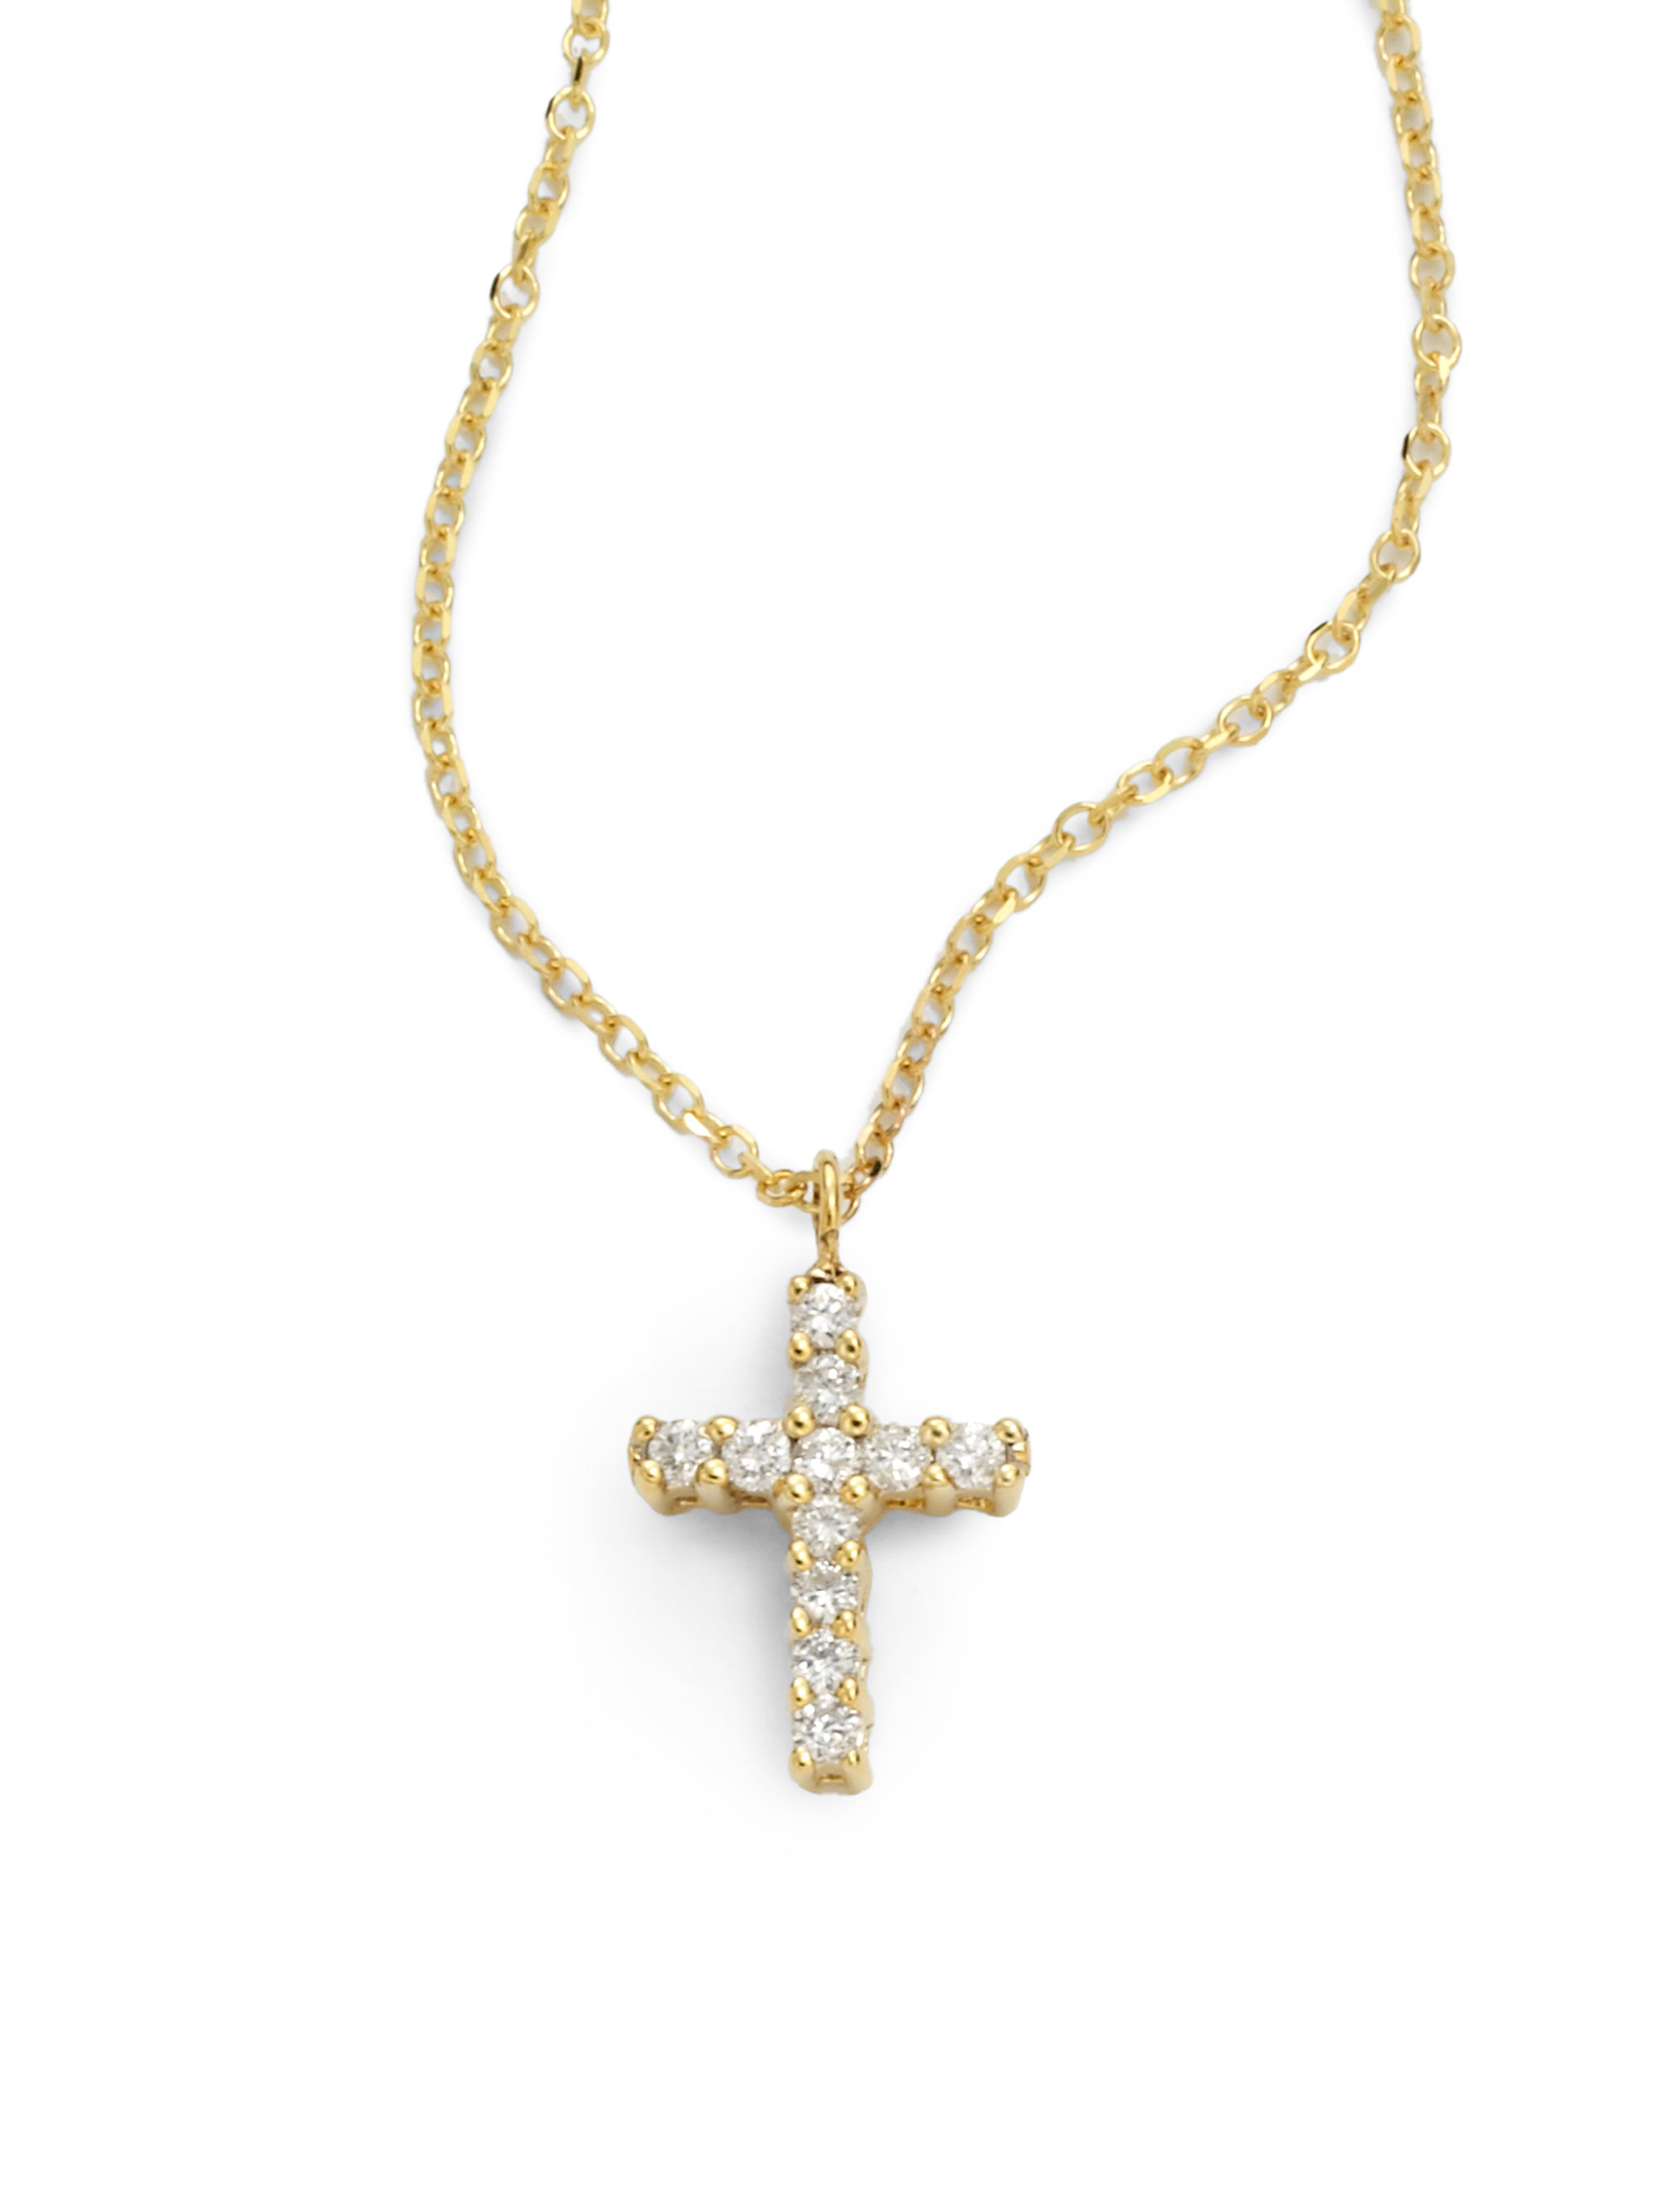 ce18b8877 Gallery. Previously sold at: Saks Fifth Avenue · Women's Diamond Cross  Necklaces